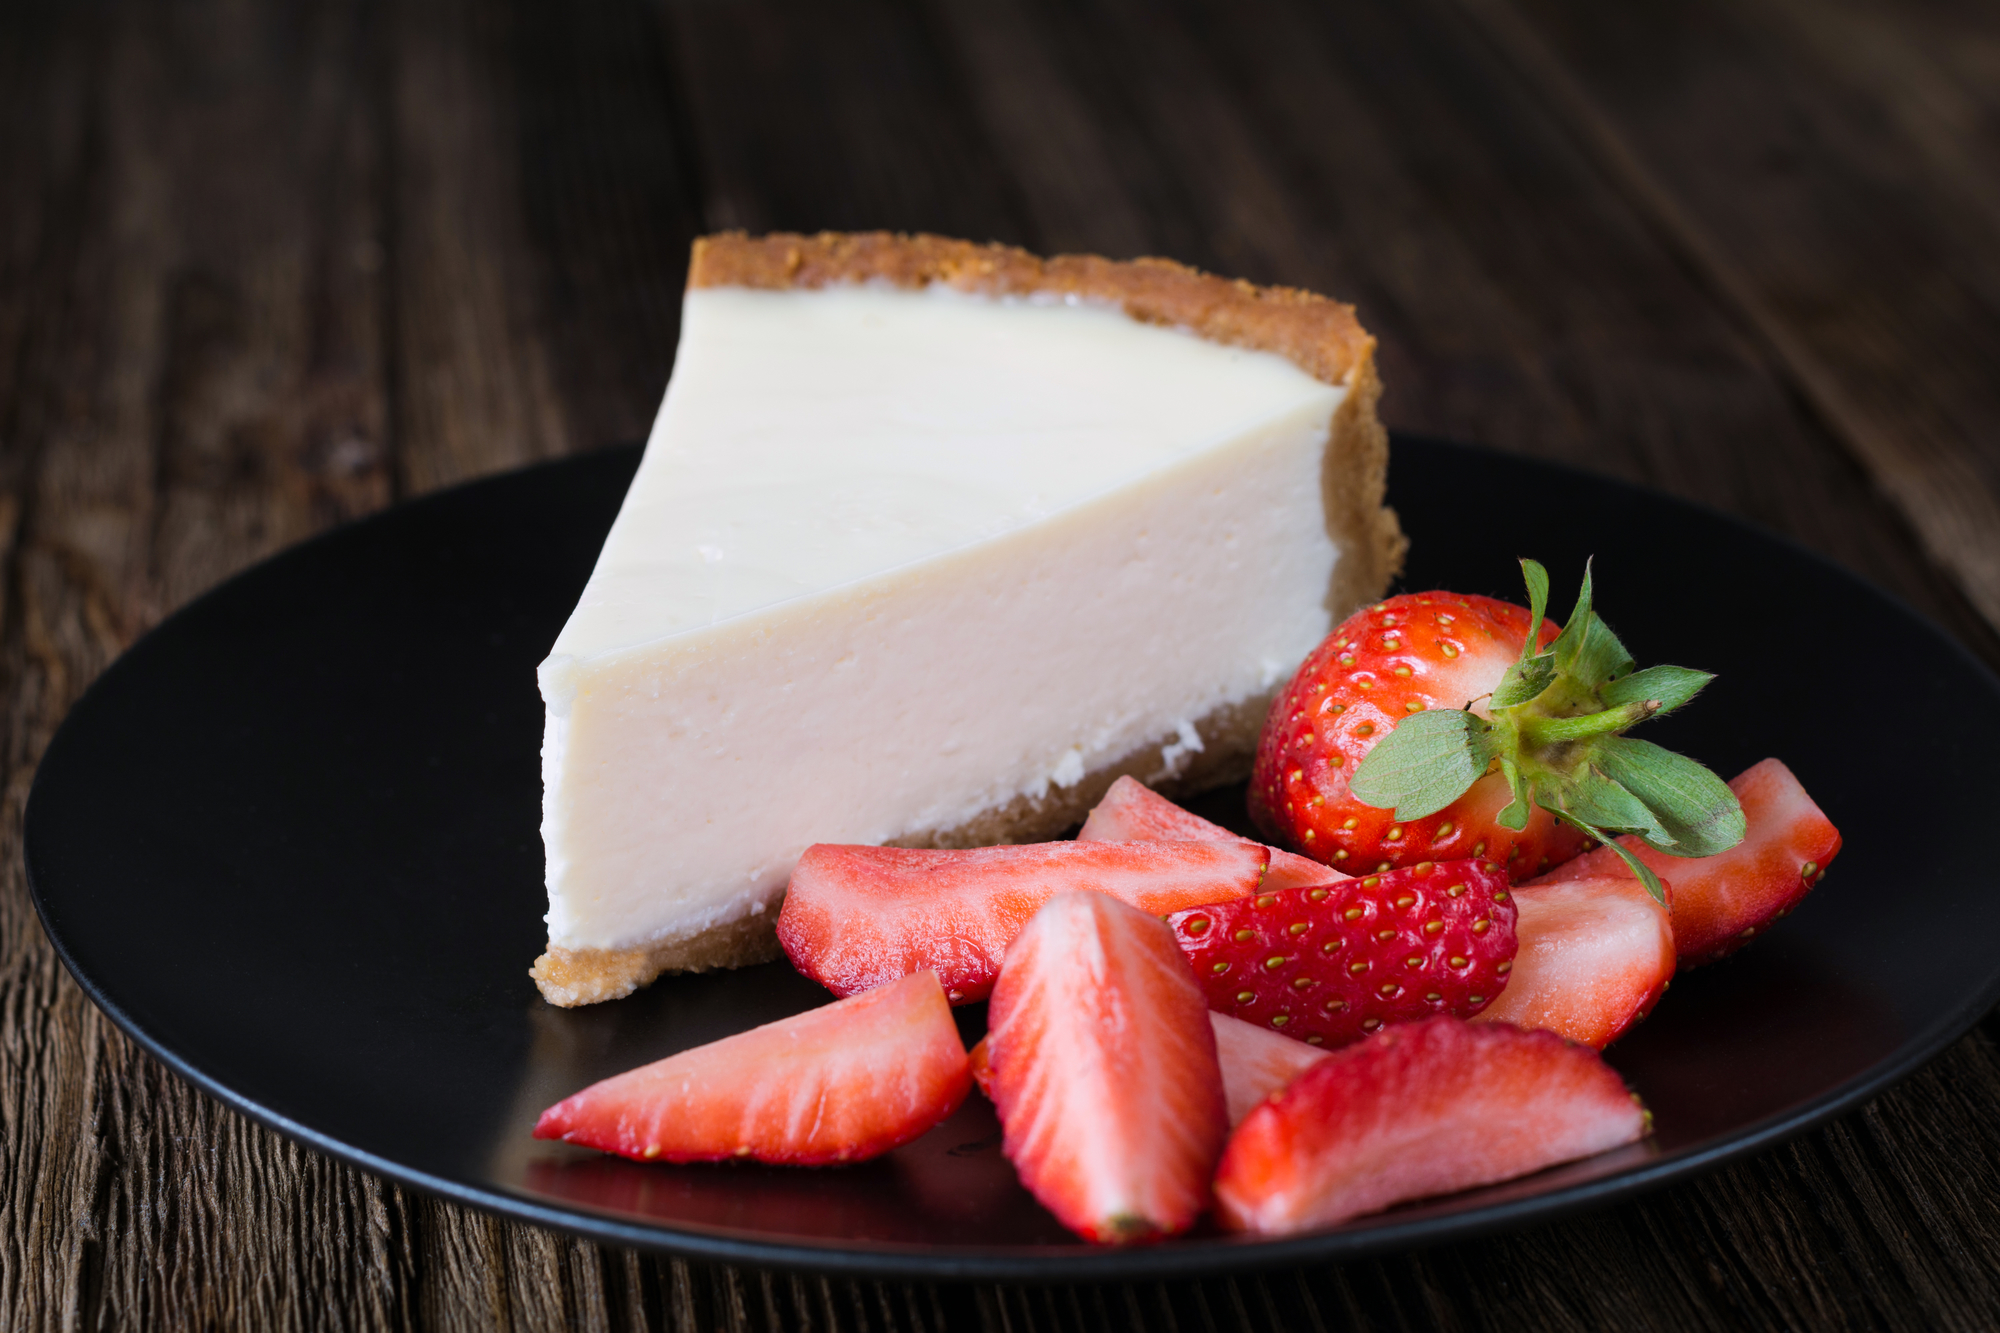 Plain cheesecake on a black plate with strawberries